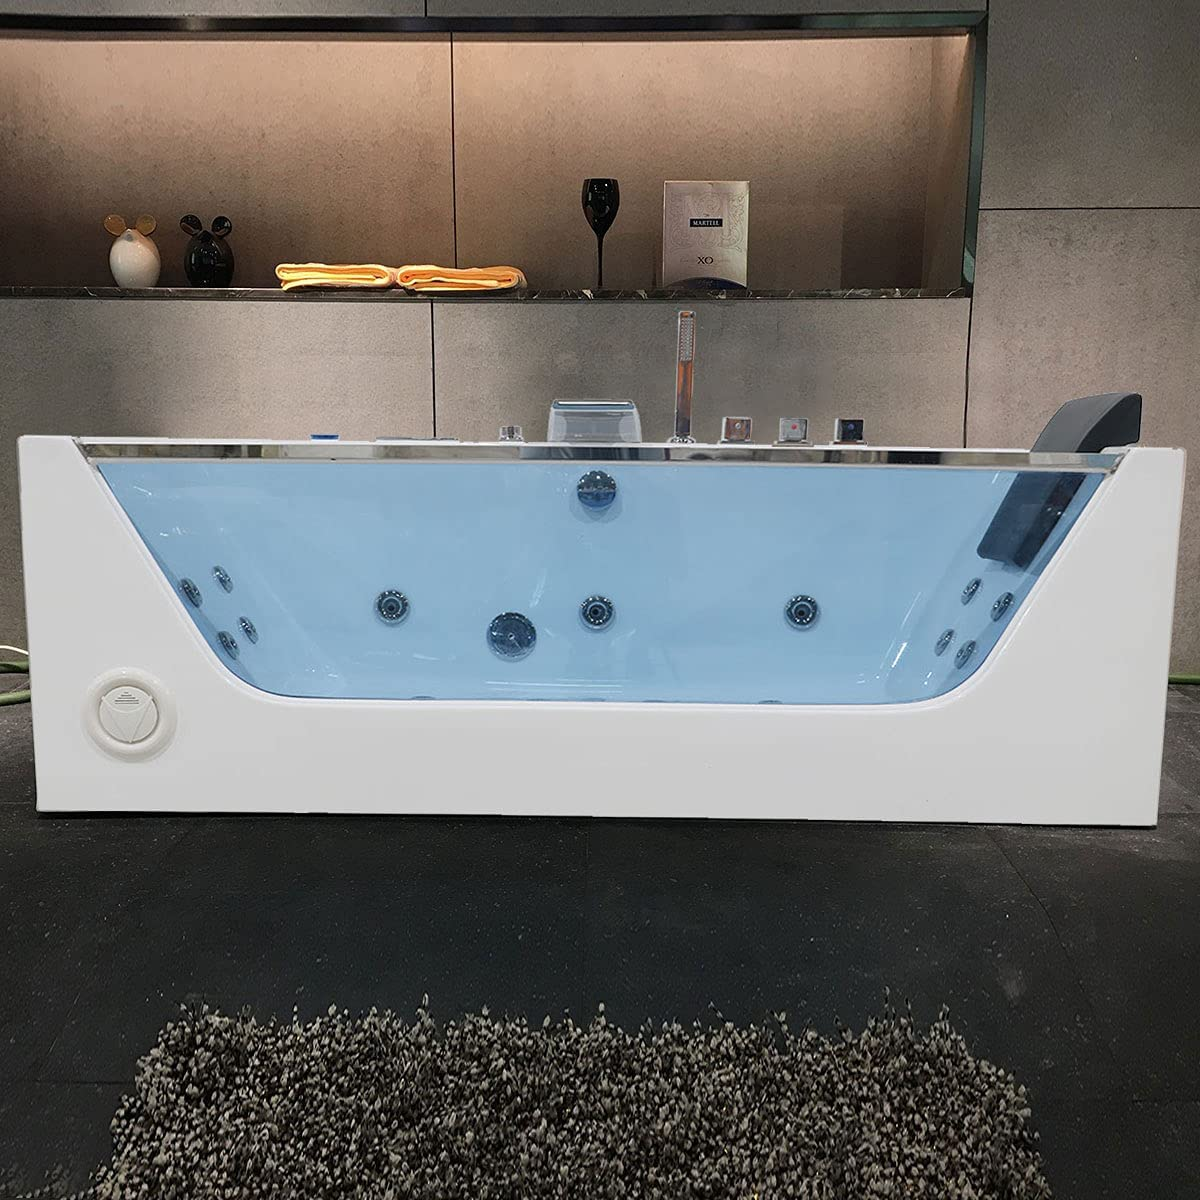 Fashion DECORAPORT 68 Inch 1 Person Infusion Bubble Air excellence Whirlpool Hydro-